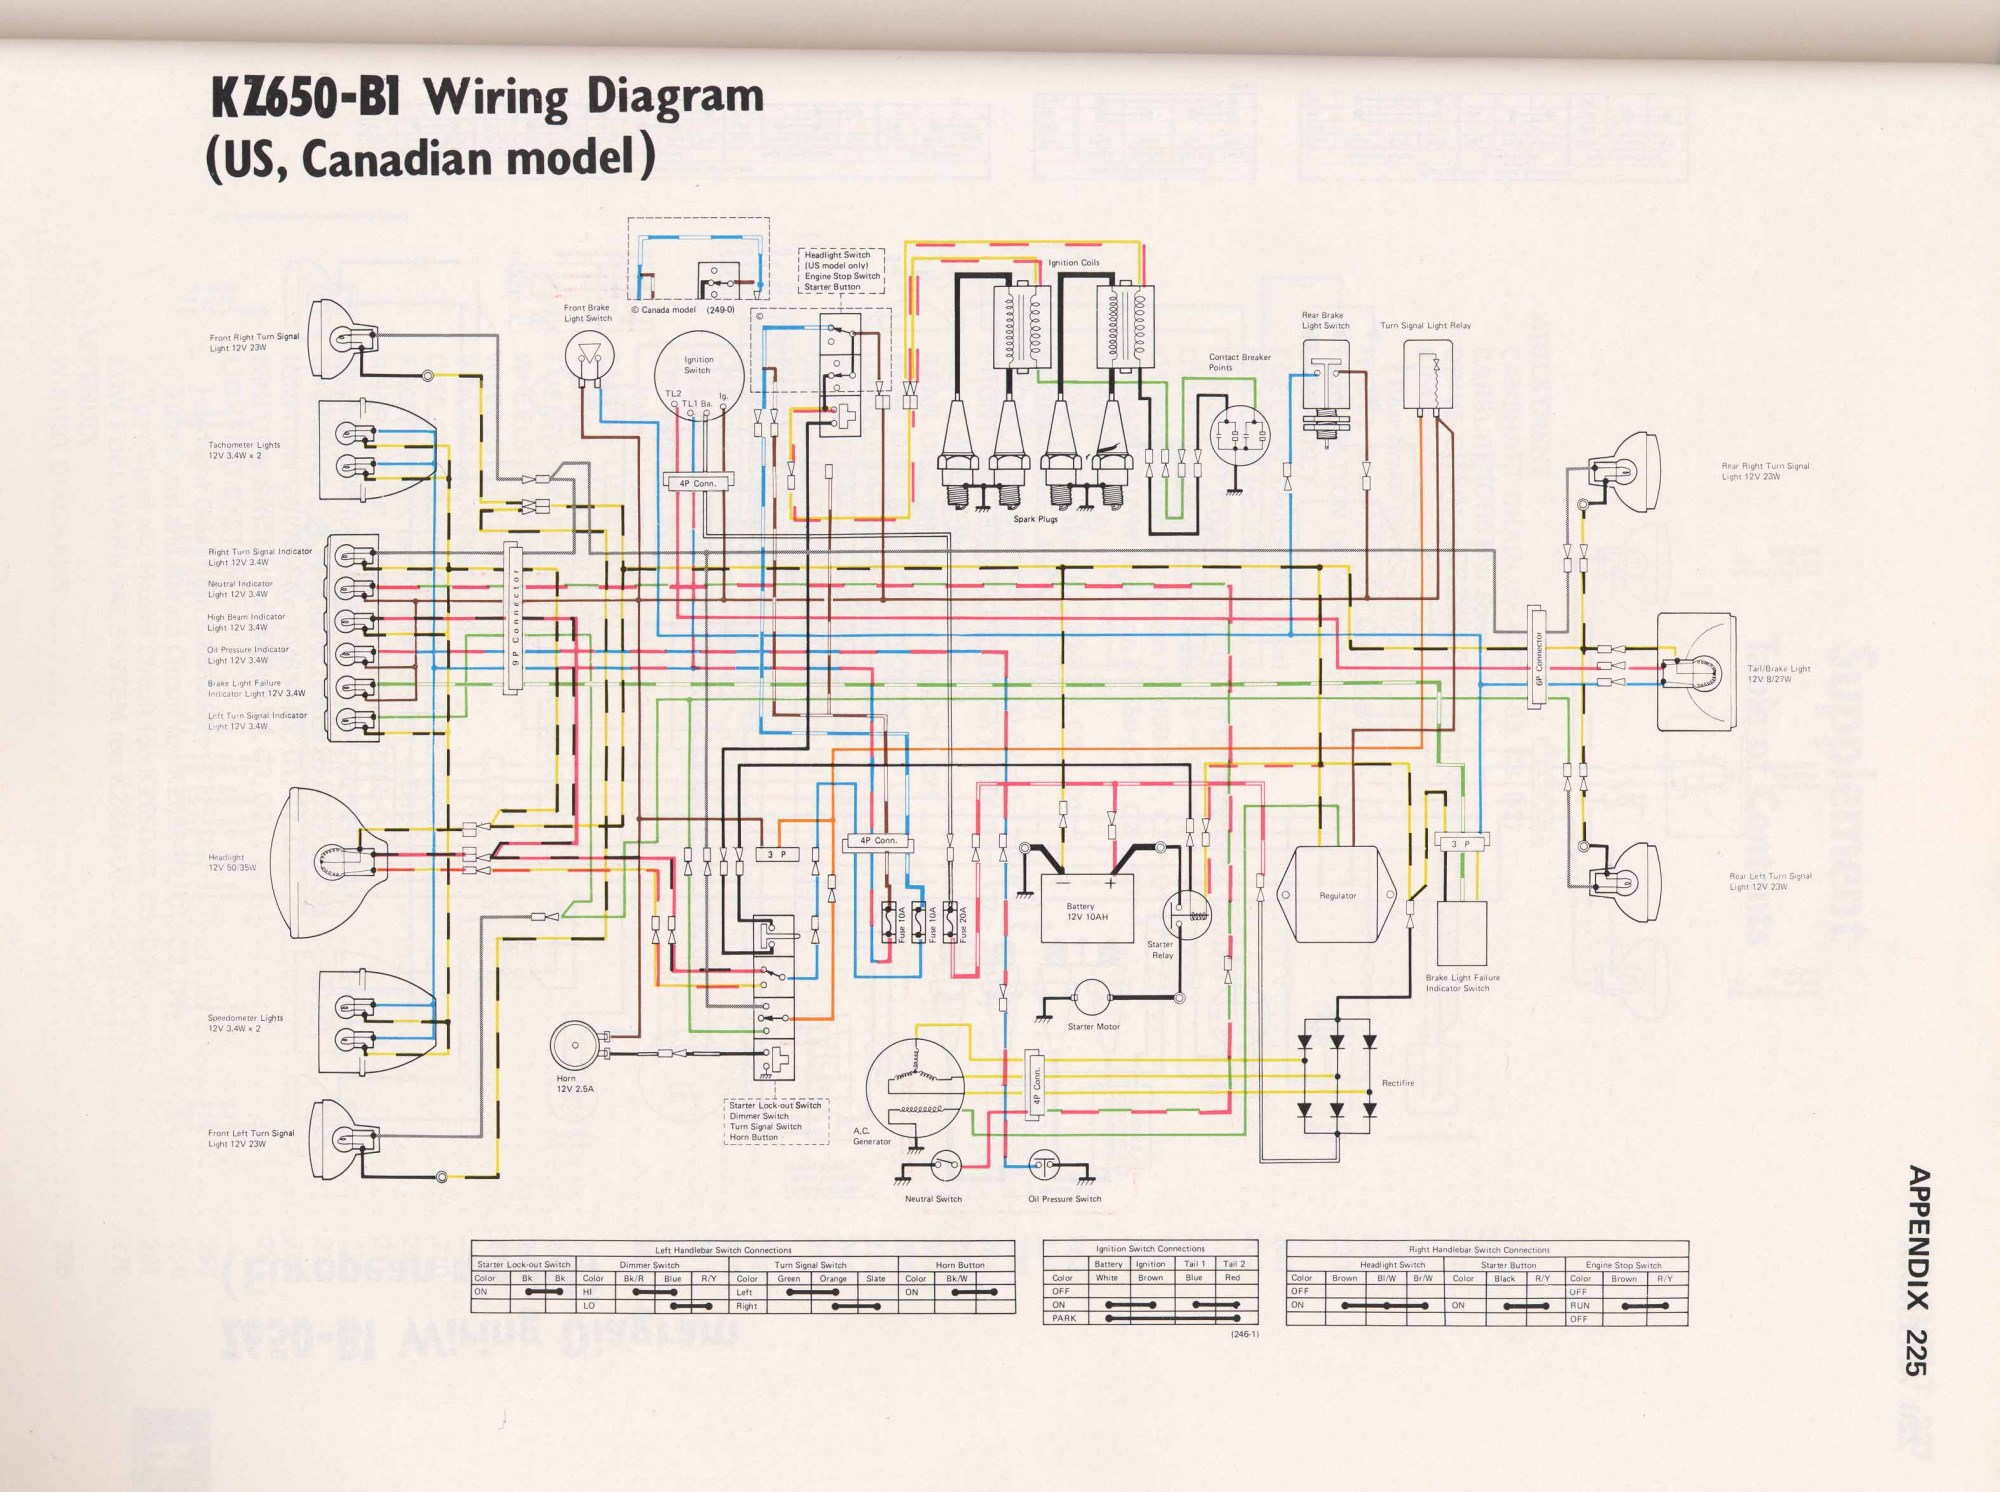 hight resolution of kz650 wiring diagrams kz650 info wiring diagrams kz650 wiring diagrams 1979 yamaha 650 special